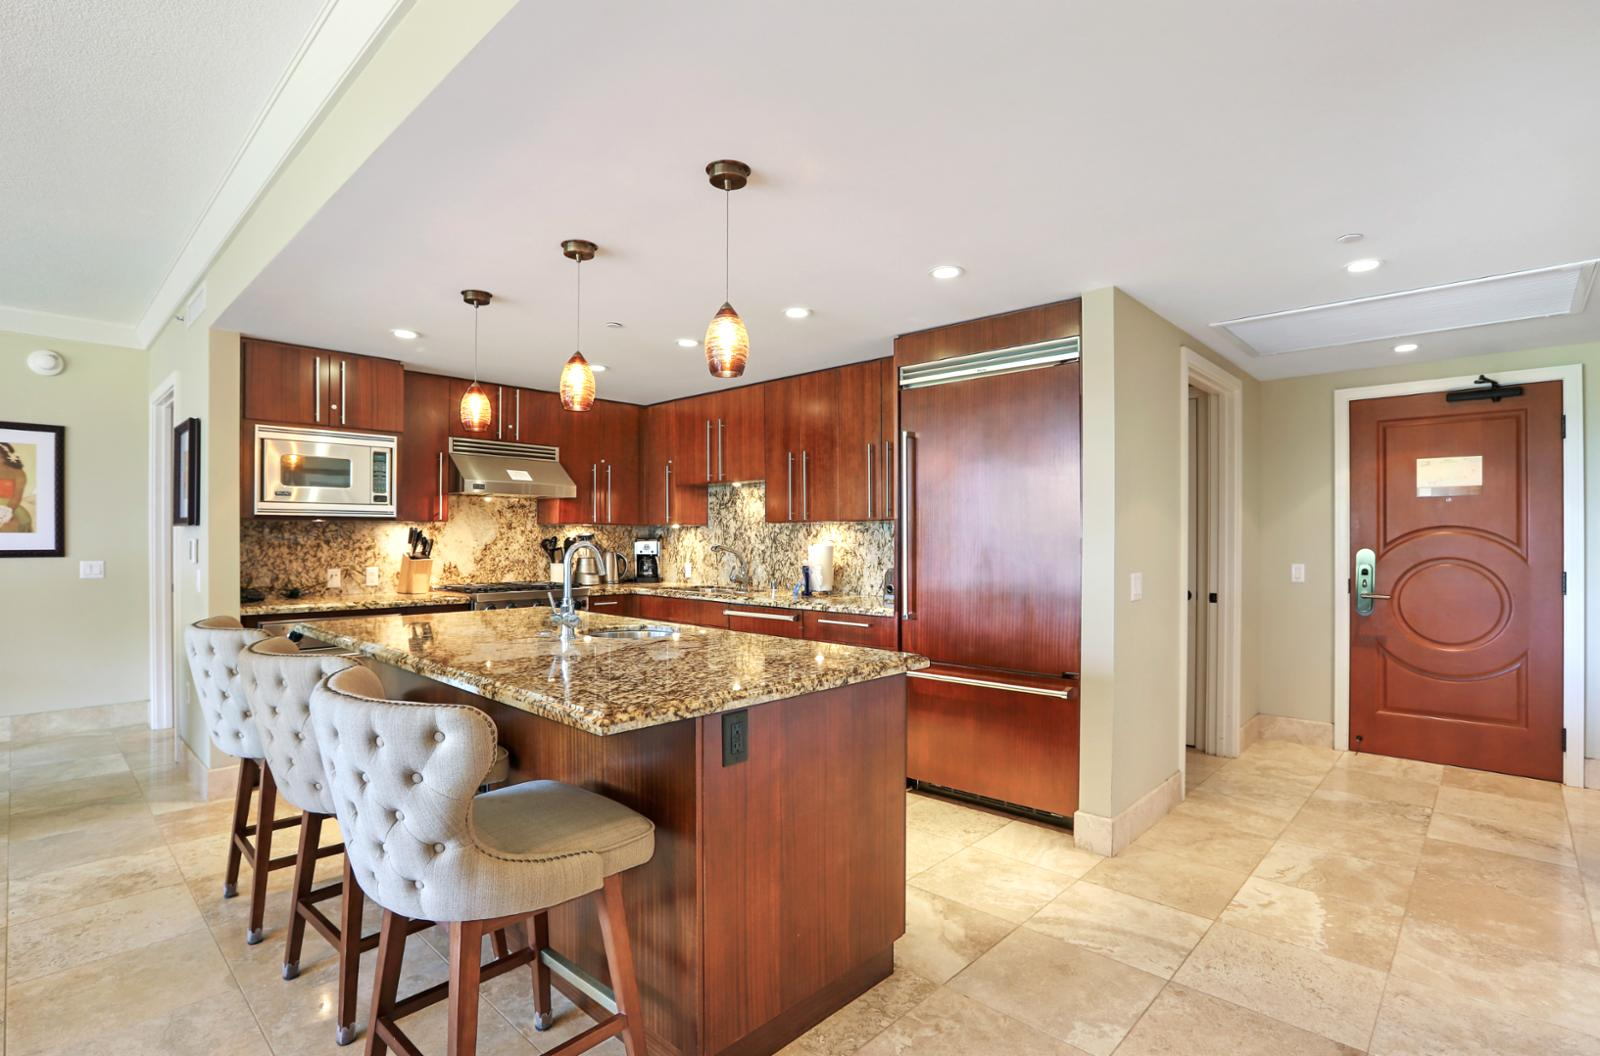 Beautiful kitchen to prepare nightly meals